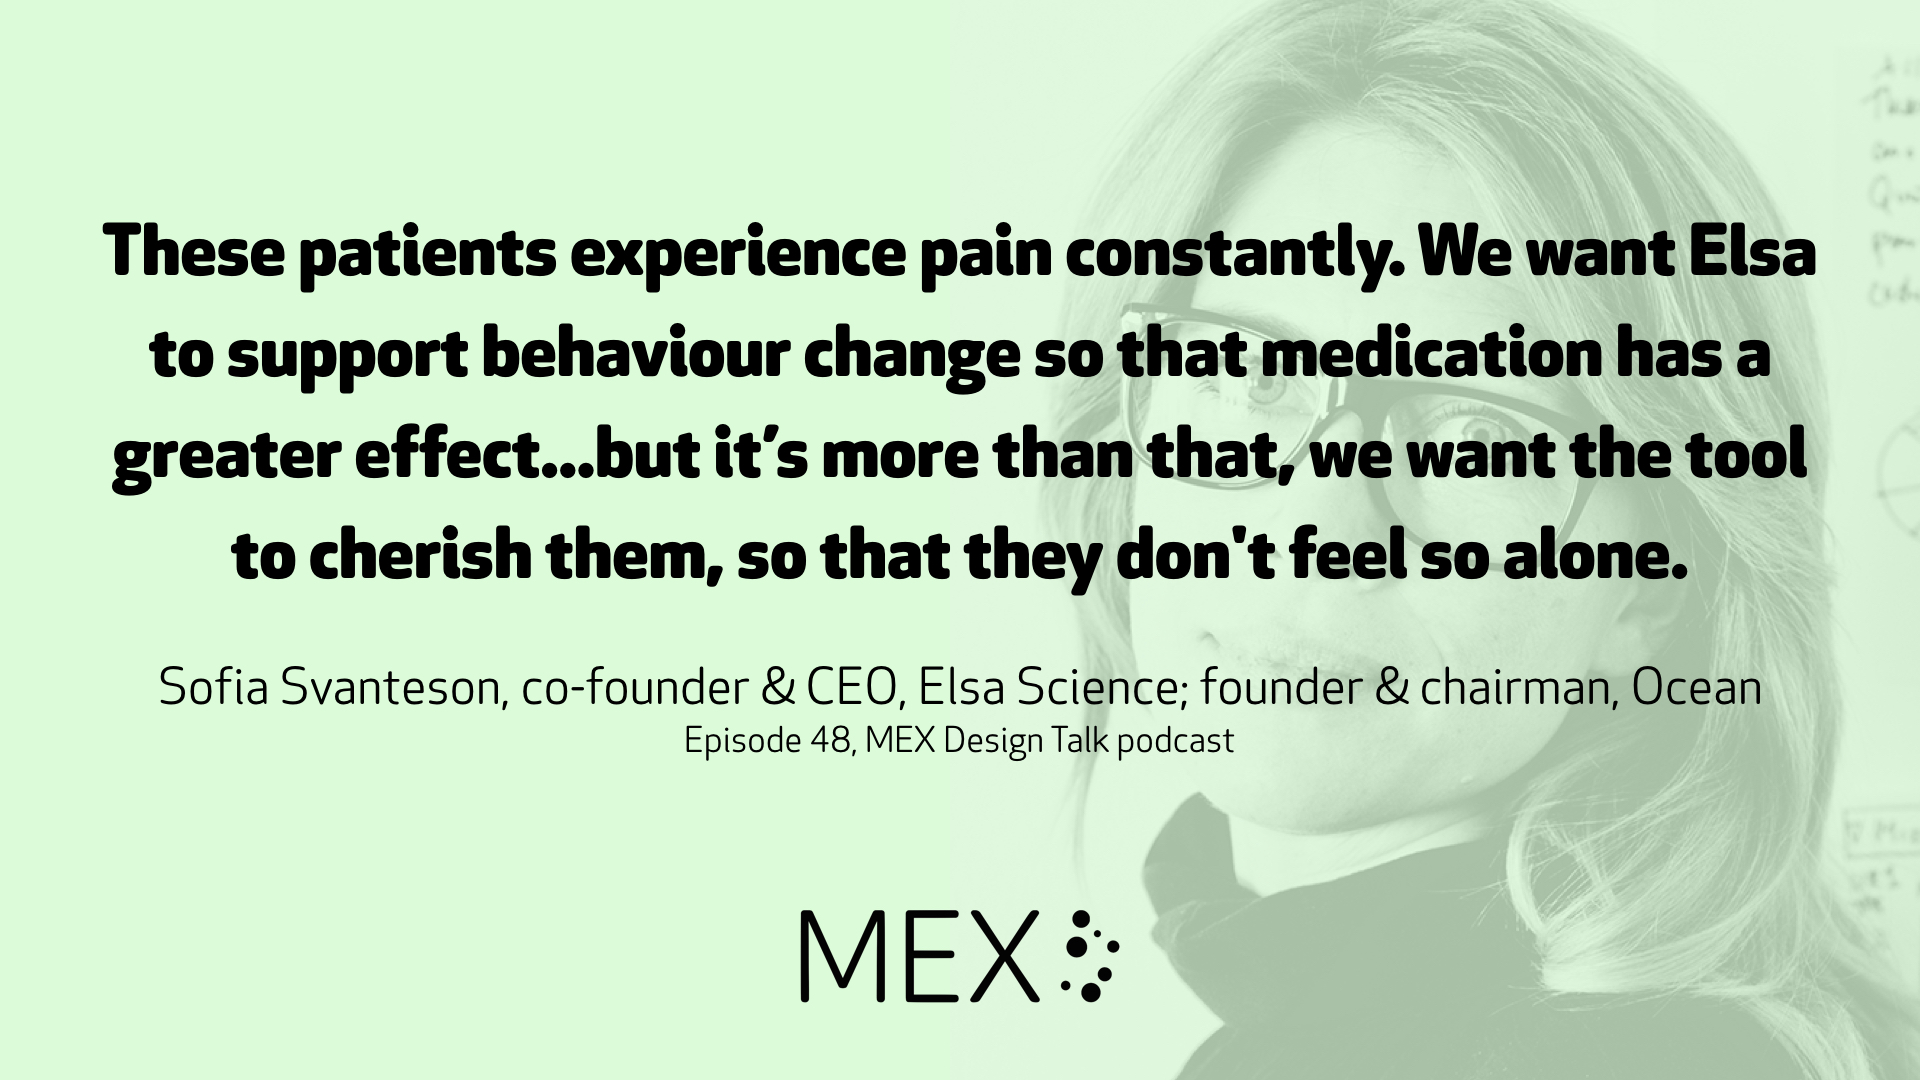 These patients experience pain constantly. We want Elsa to support behaviour change so that medication has a greater effect...but it's more than that, we want the tool to cherish them, so that they don't feel so alone. Sofia Svanteson, co-founder & CEO, Elsa Science; founder & chairman, Ocean Episode 48, MEX Design Talk podcast